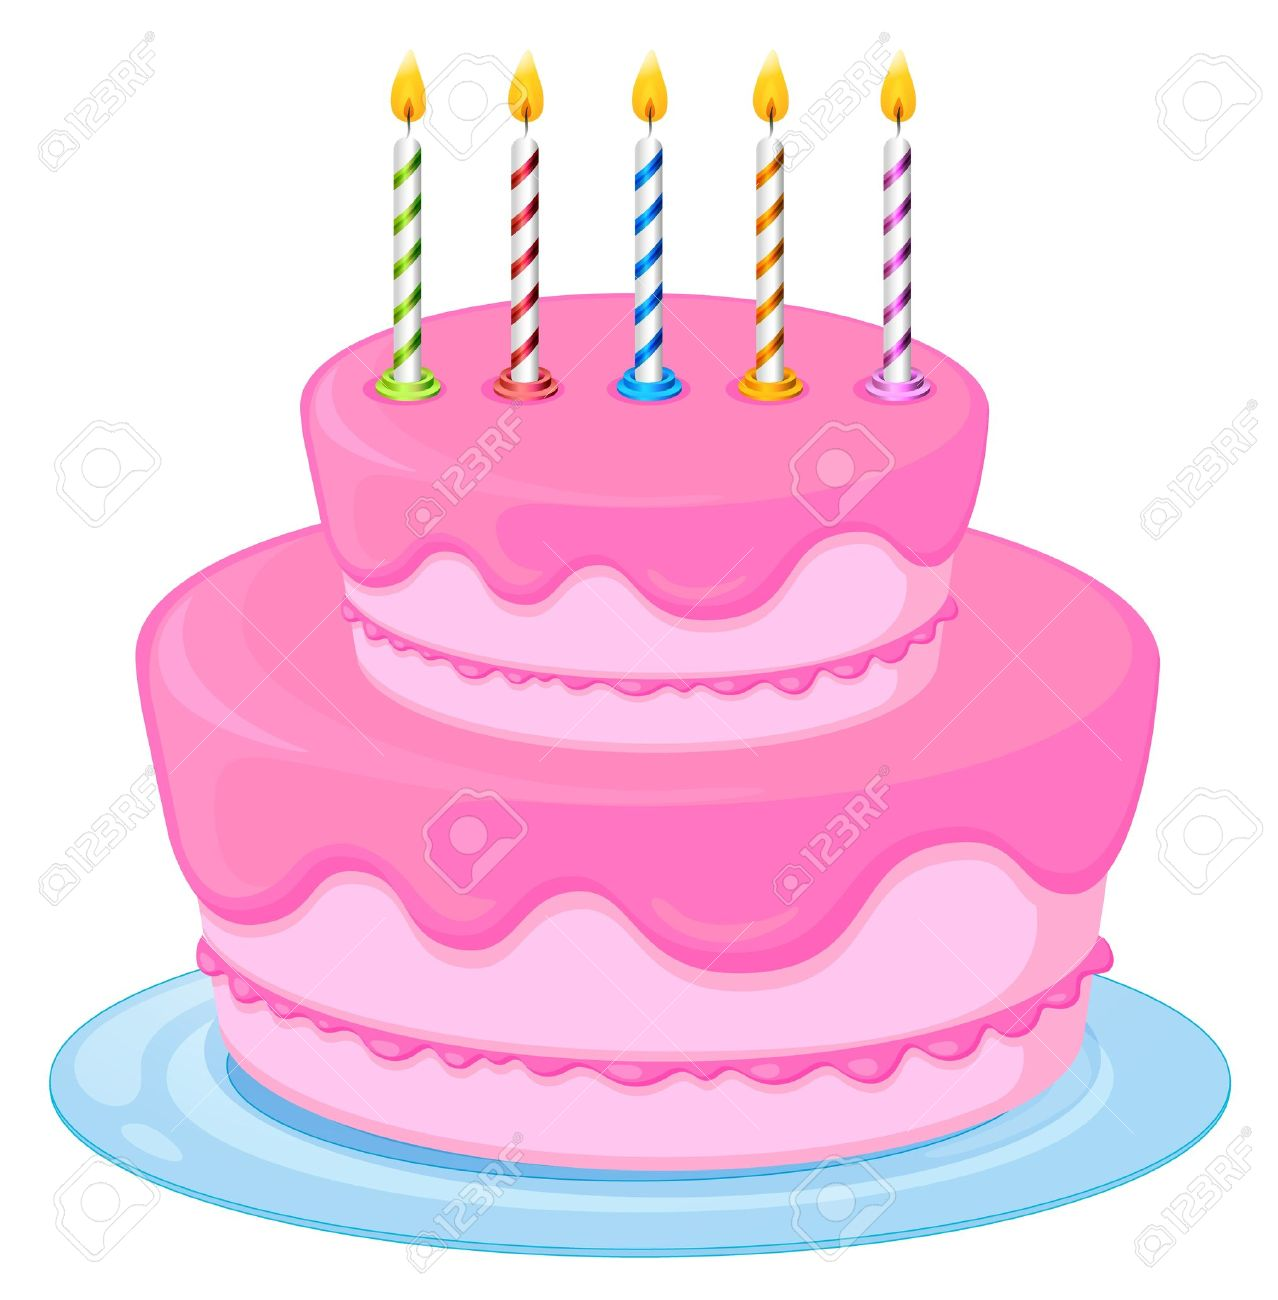 Superb Illustration Of A Pink Birthday Cake On A White Background Royalty Funny Birthday Cards Online Elaedamsfinfo